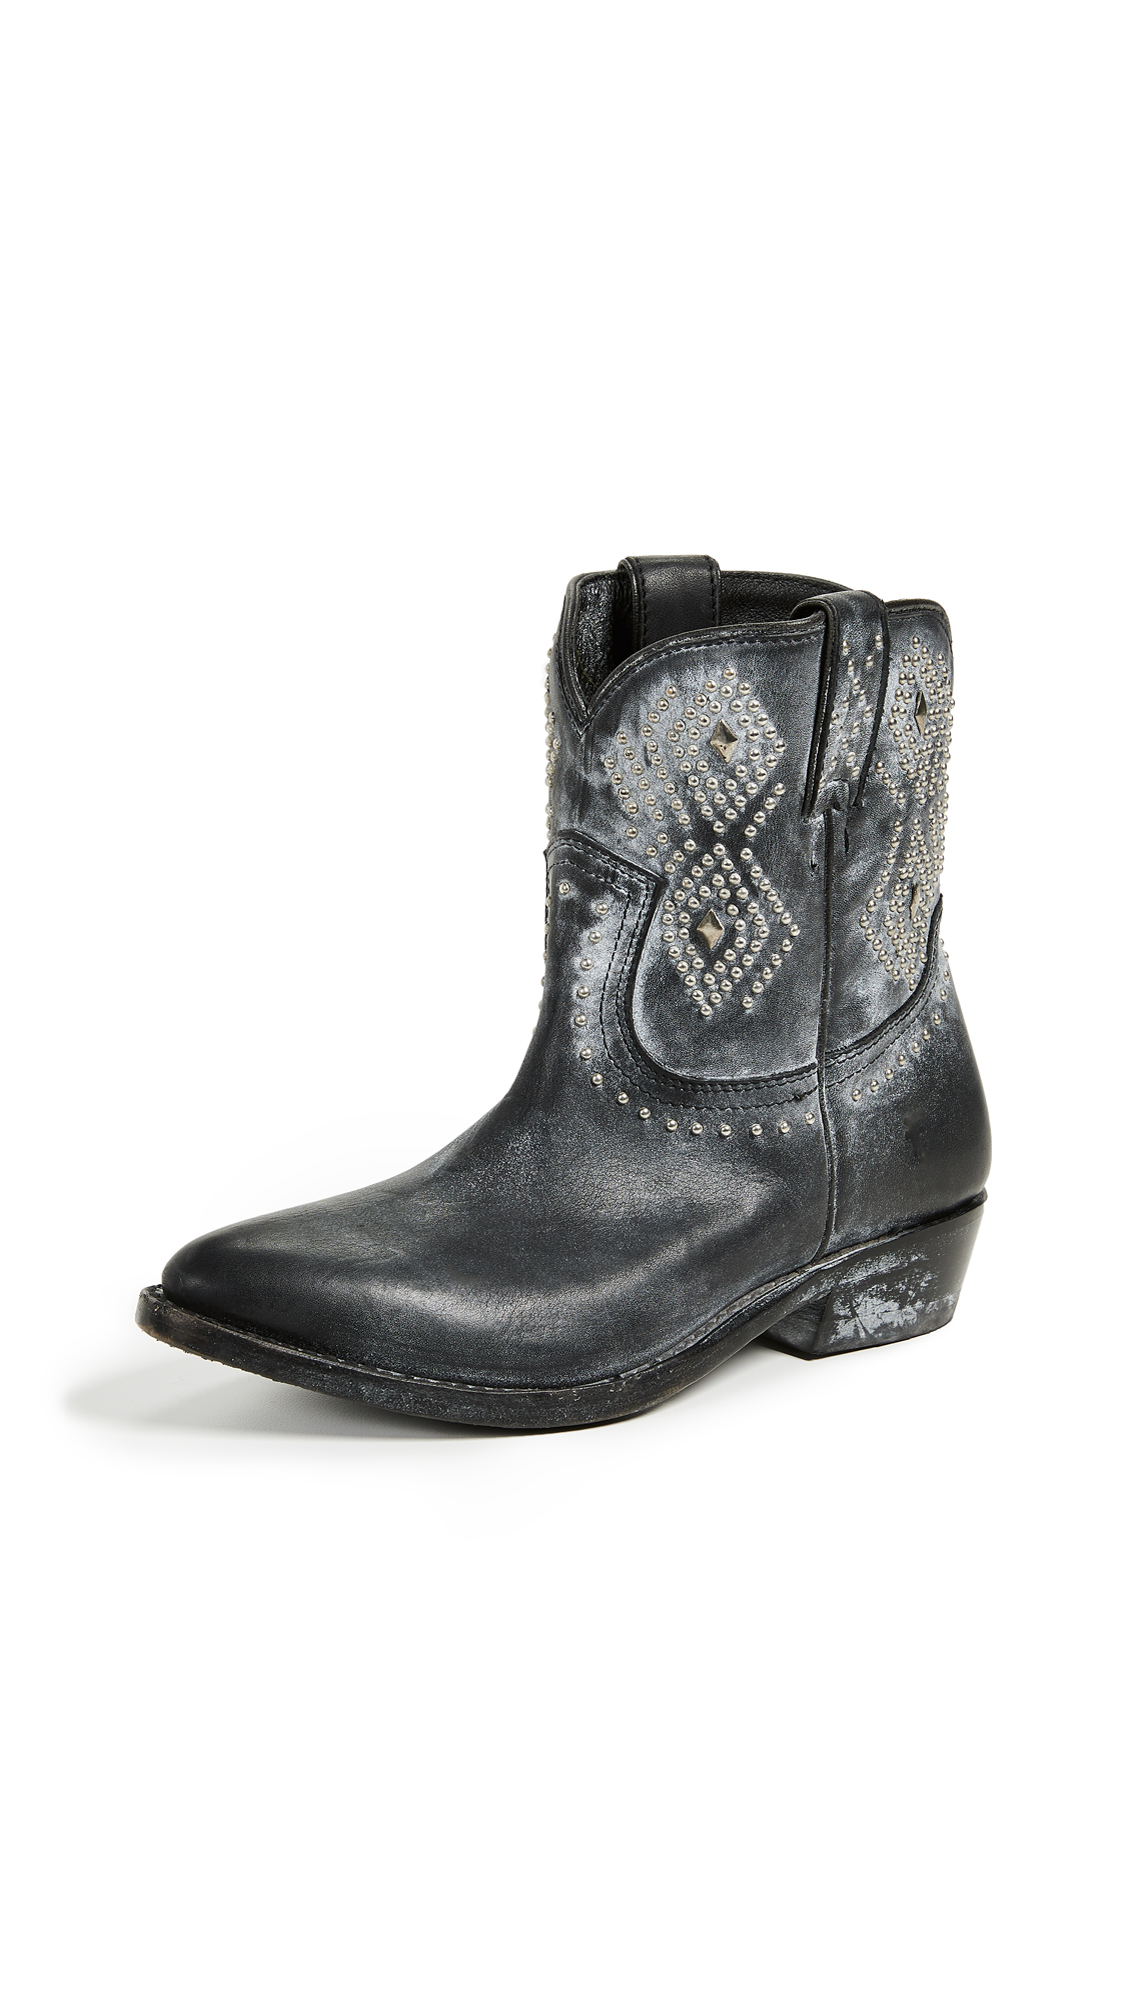 Frye Billy Stud Short Boots - Black